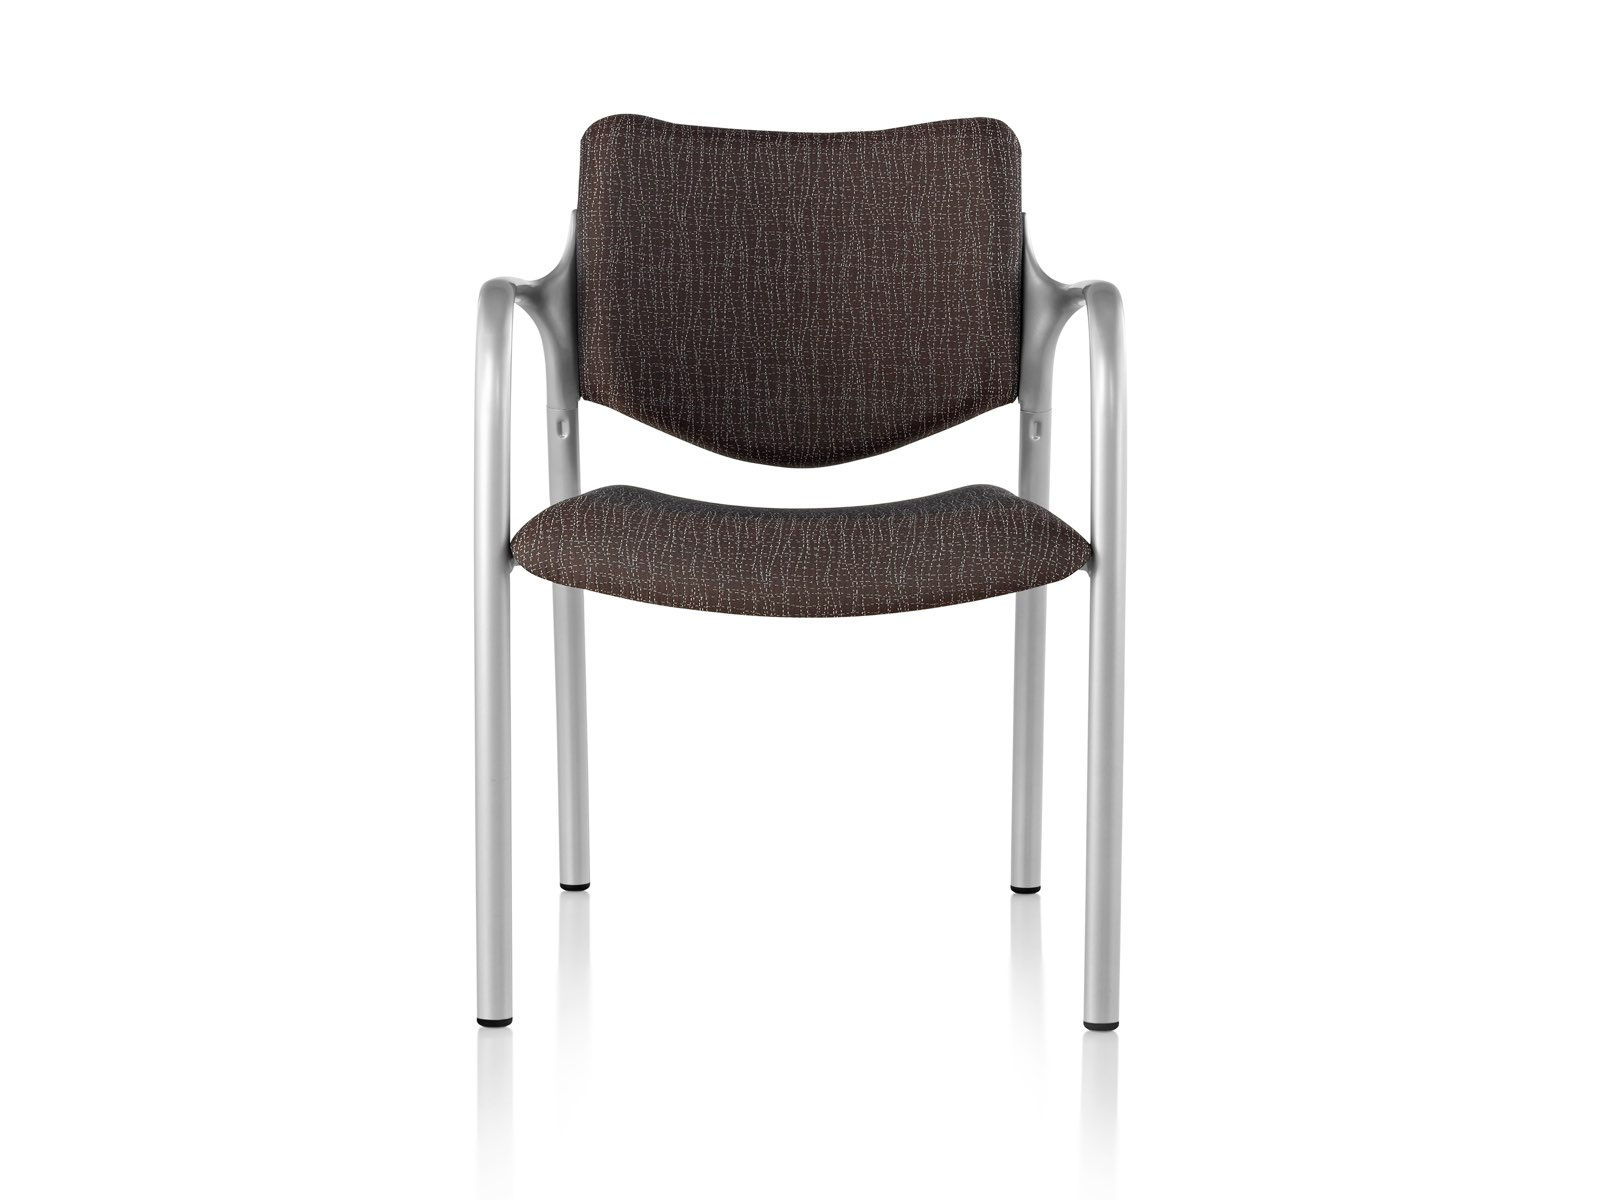 Brown Aside Chair with silver arms, viewed from the front.